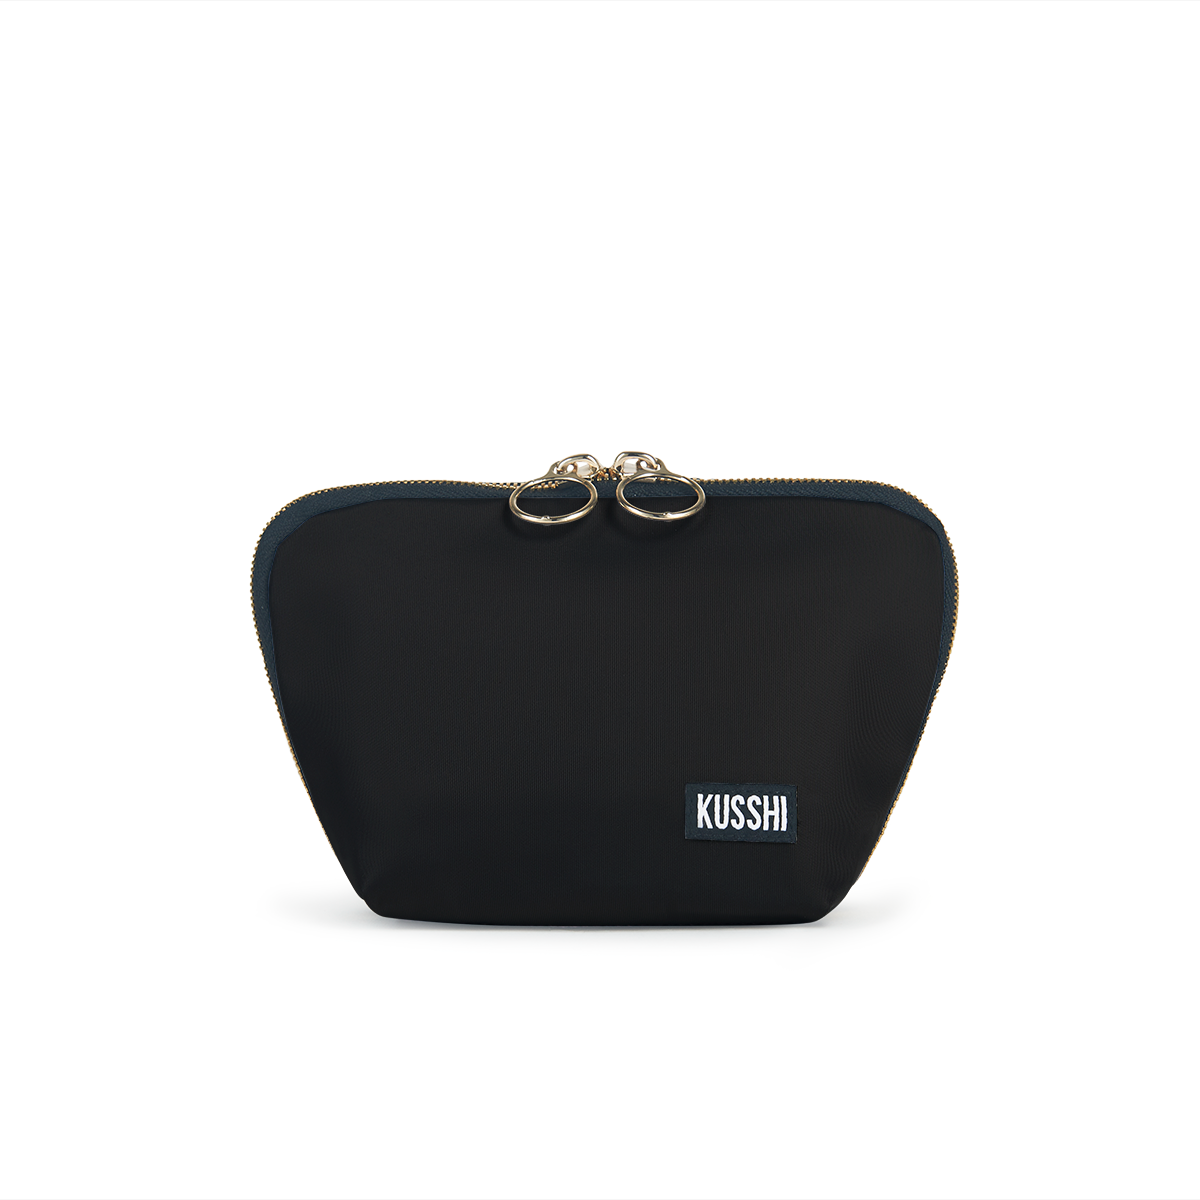 color: Satin Black Fabric; alt: Everyday Small Size Makeup Bag | KUSSHI